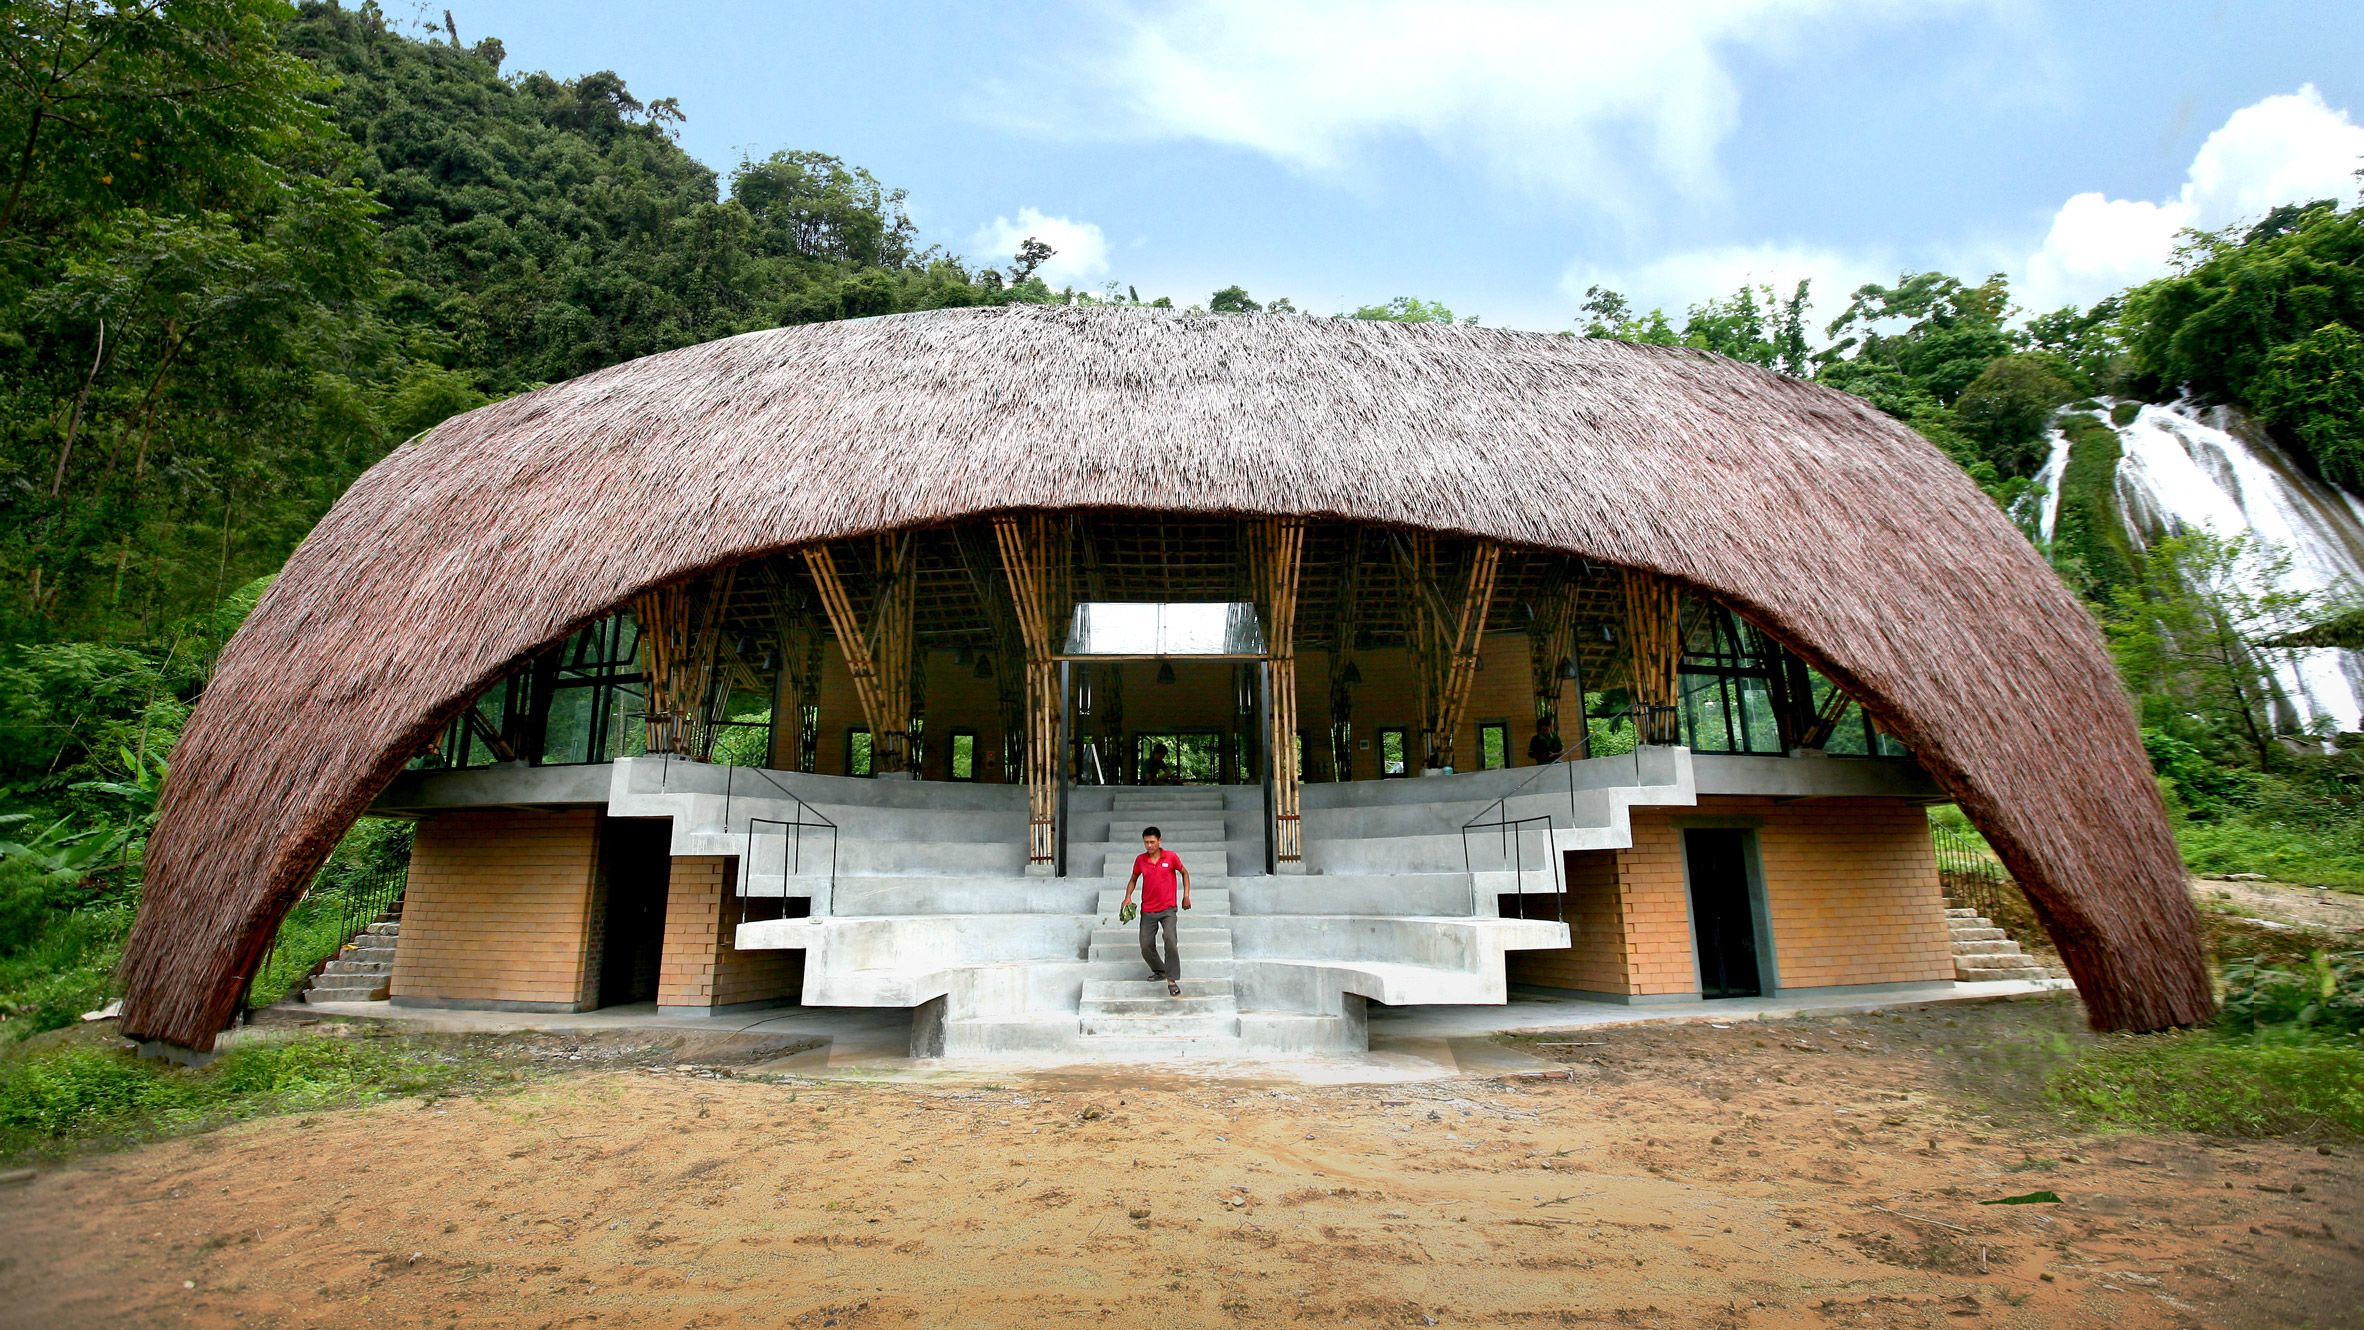 This Community Centre Designed By 1 1 2 Architects In Vietnam Features A Bamboo Framework And Thatched Roof T Community Housing Roof Architecture Thatched Roof